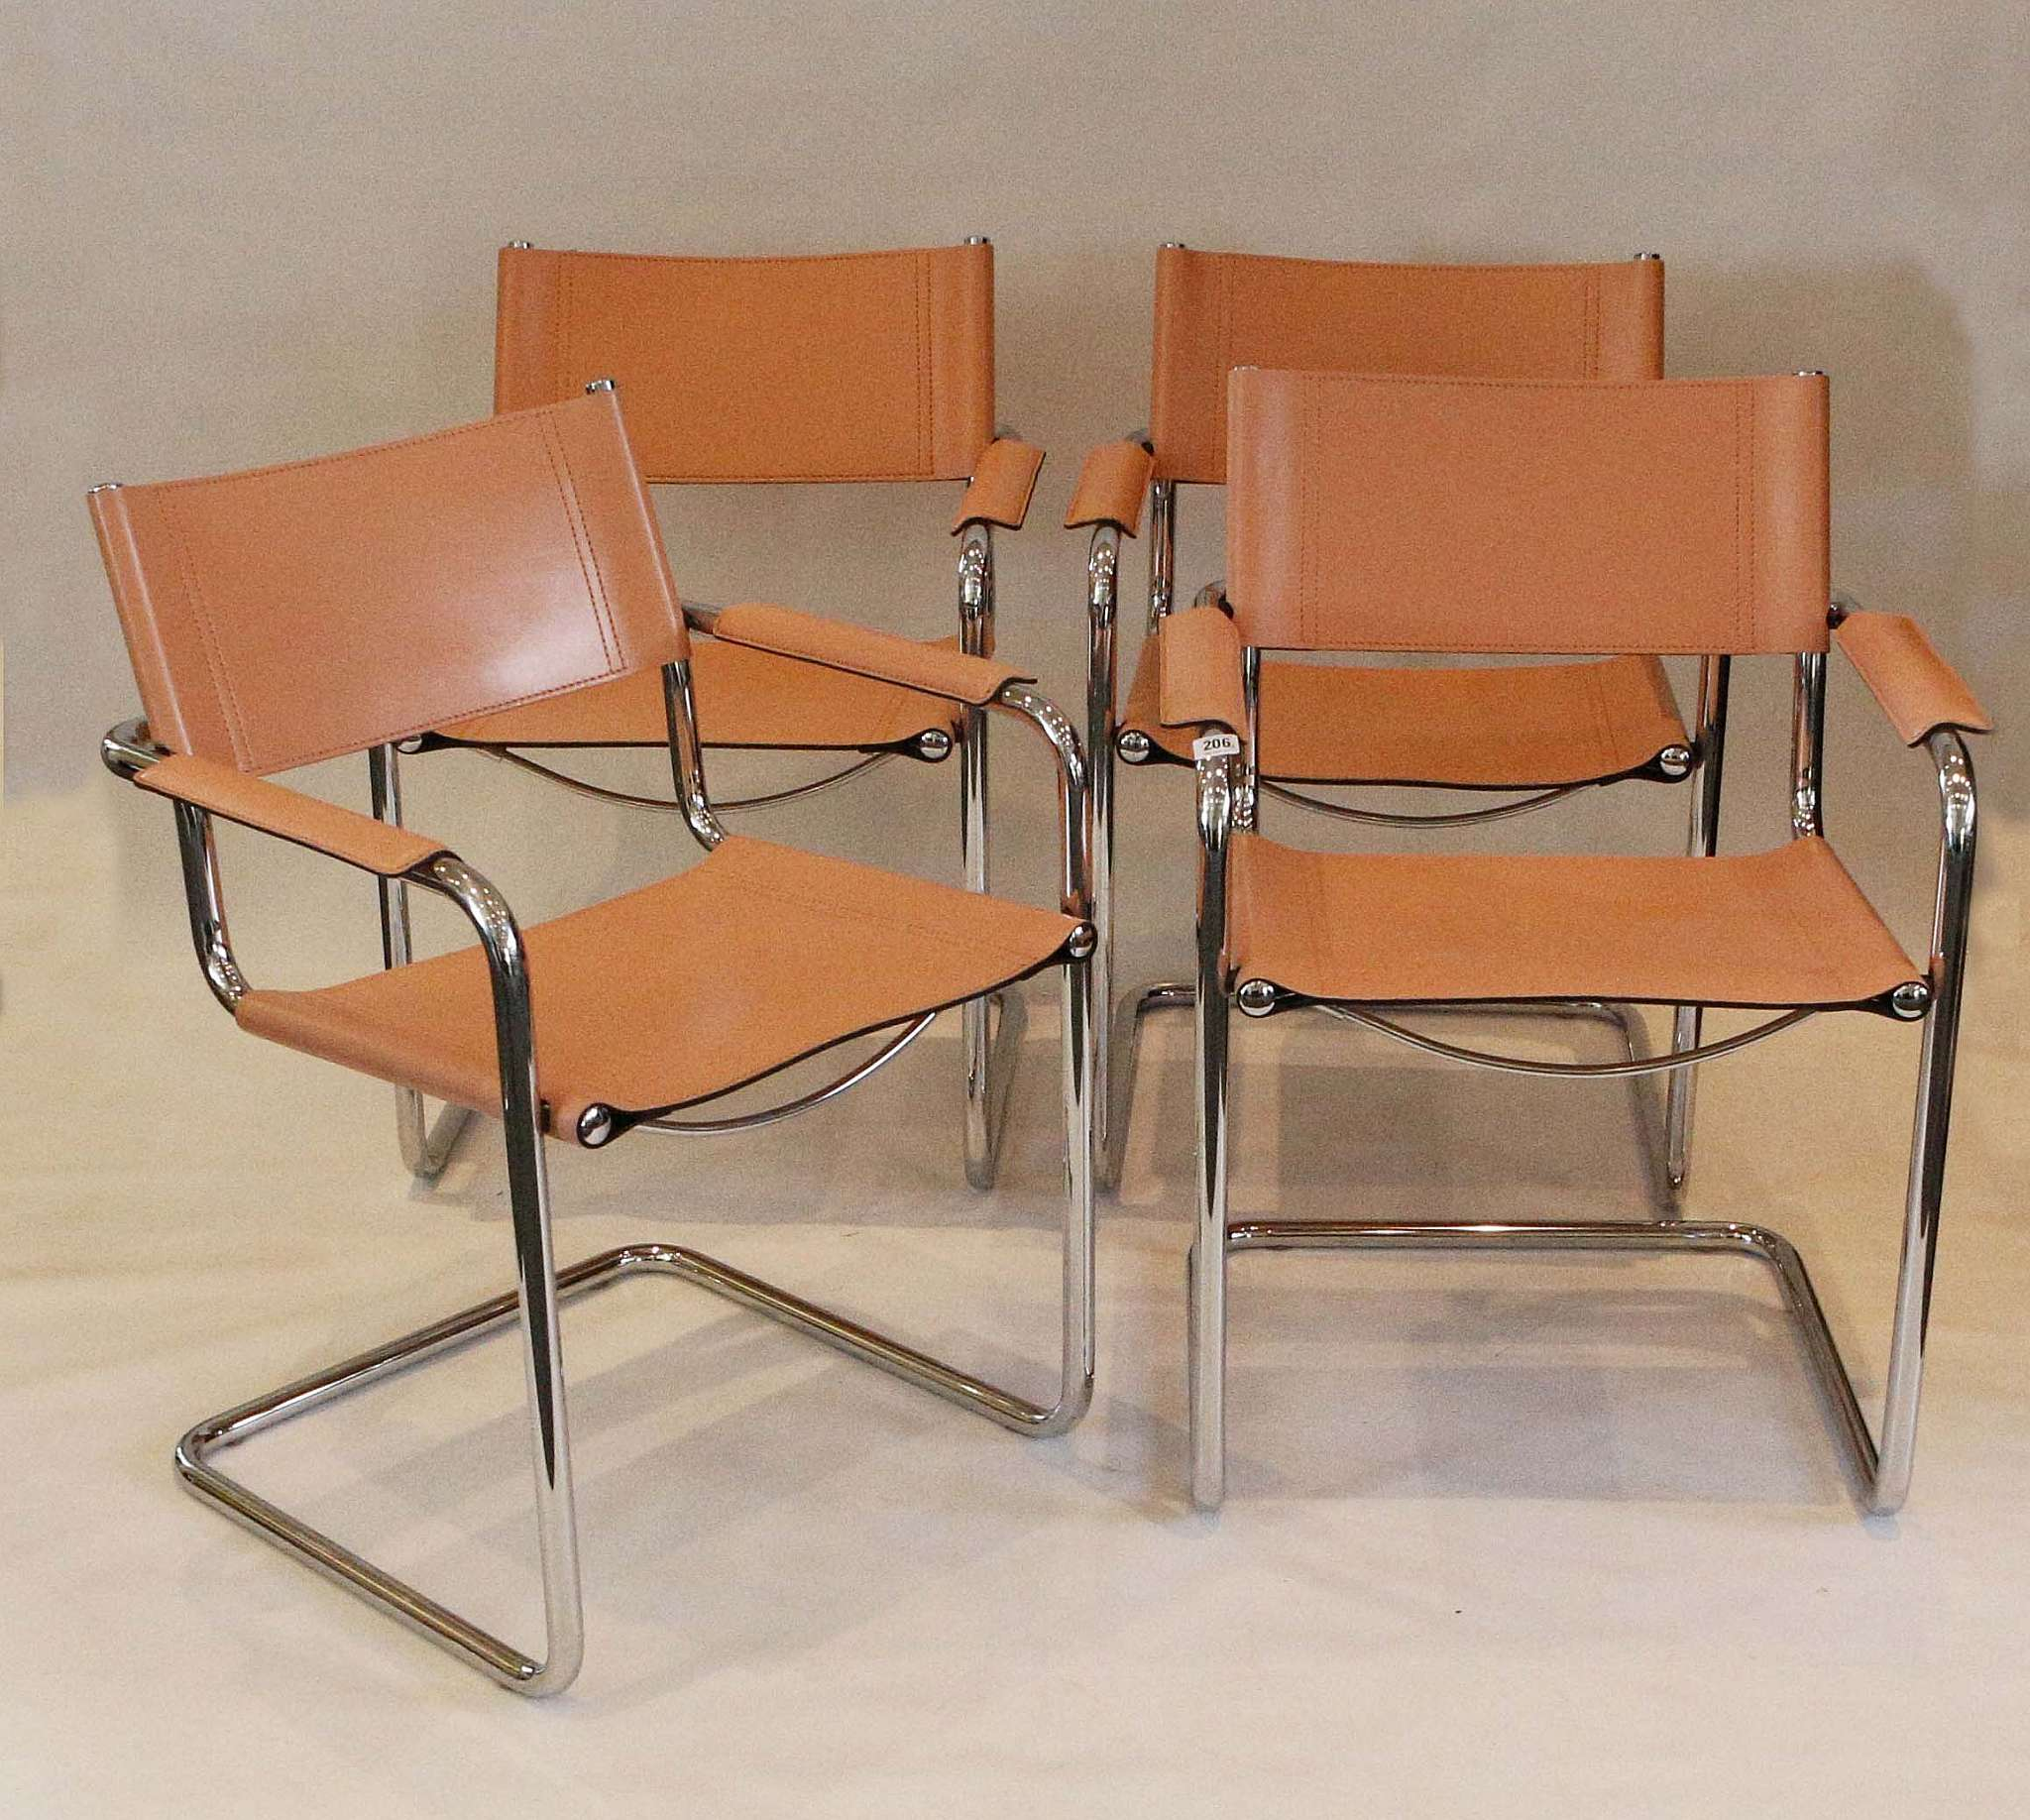 A Set Of Six Mg5 Dining Chair By Centra Studi For Matteo Grassi Italy Blush Leather On Chrome F